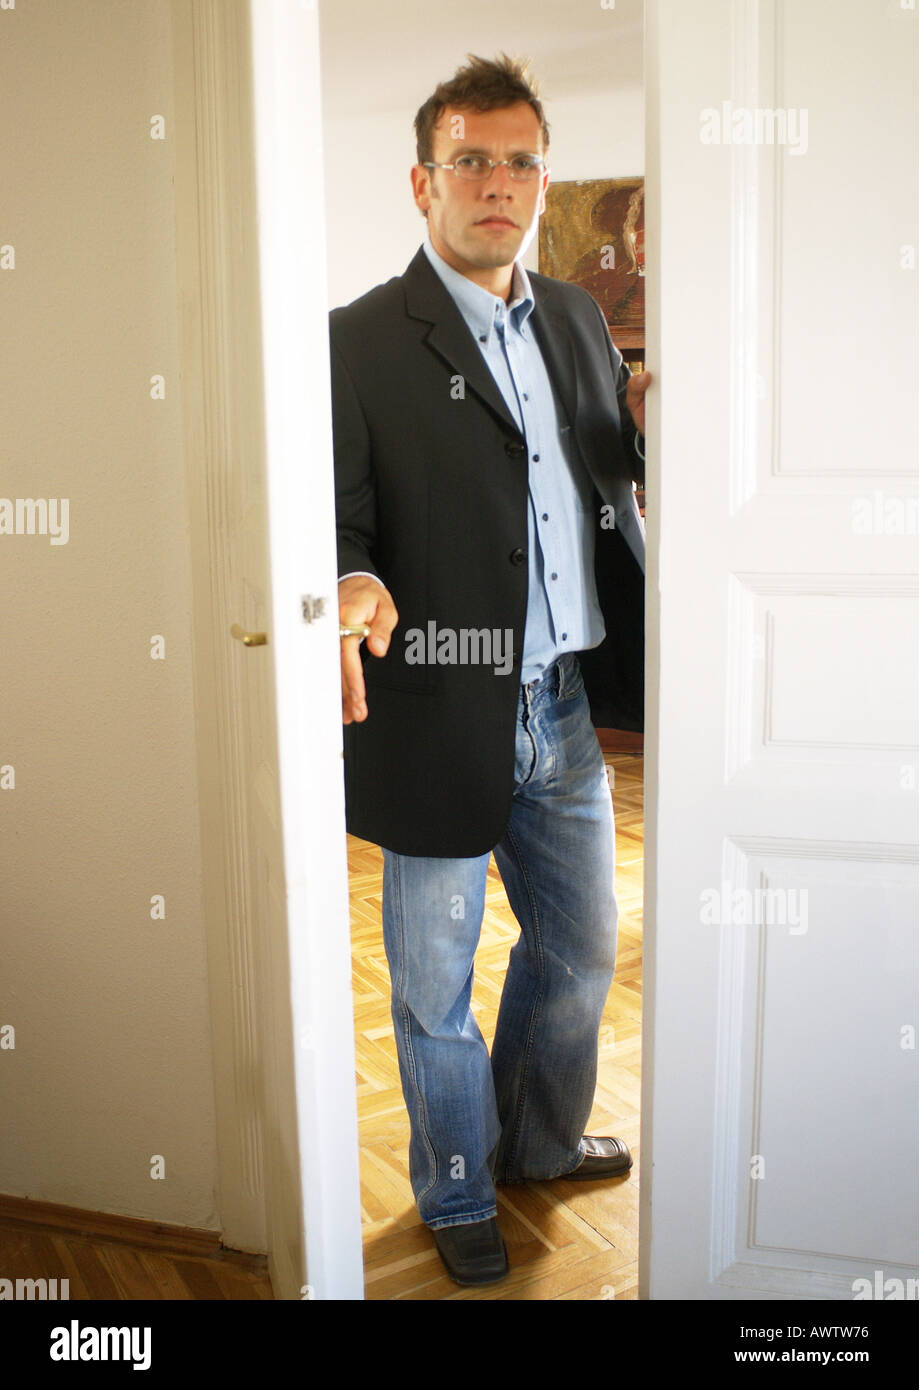 Man opening door  sc 1 st  Alamy & Man opening door Stock Photo: 5437813 - Alamy